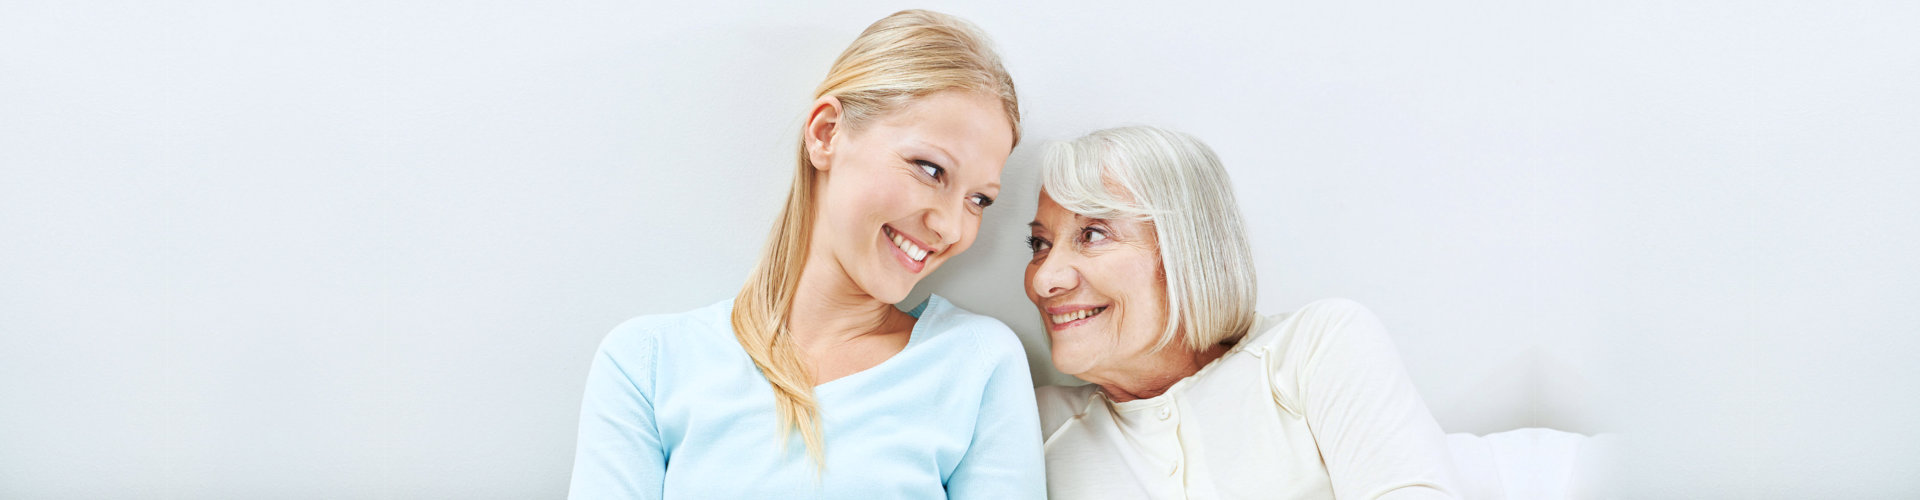 caregiver and elderly woman are smiling